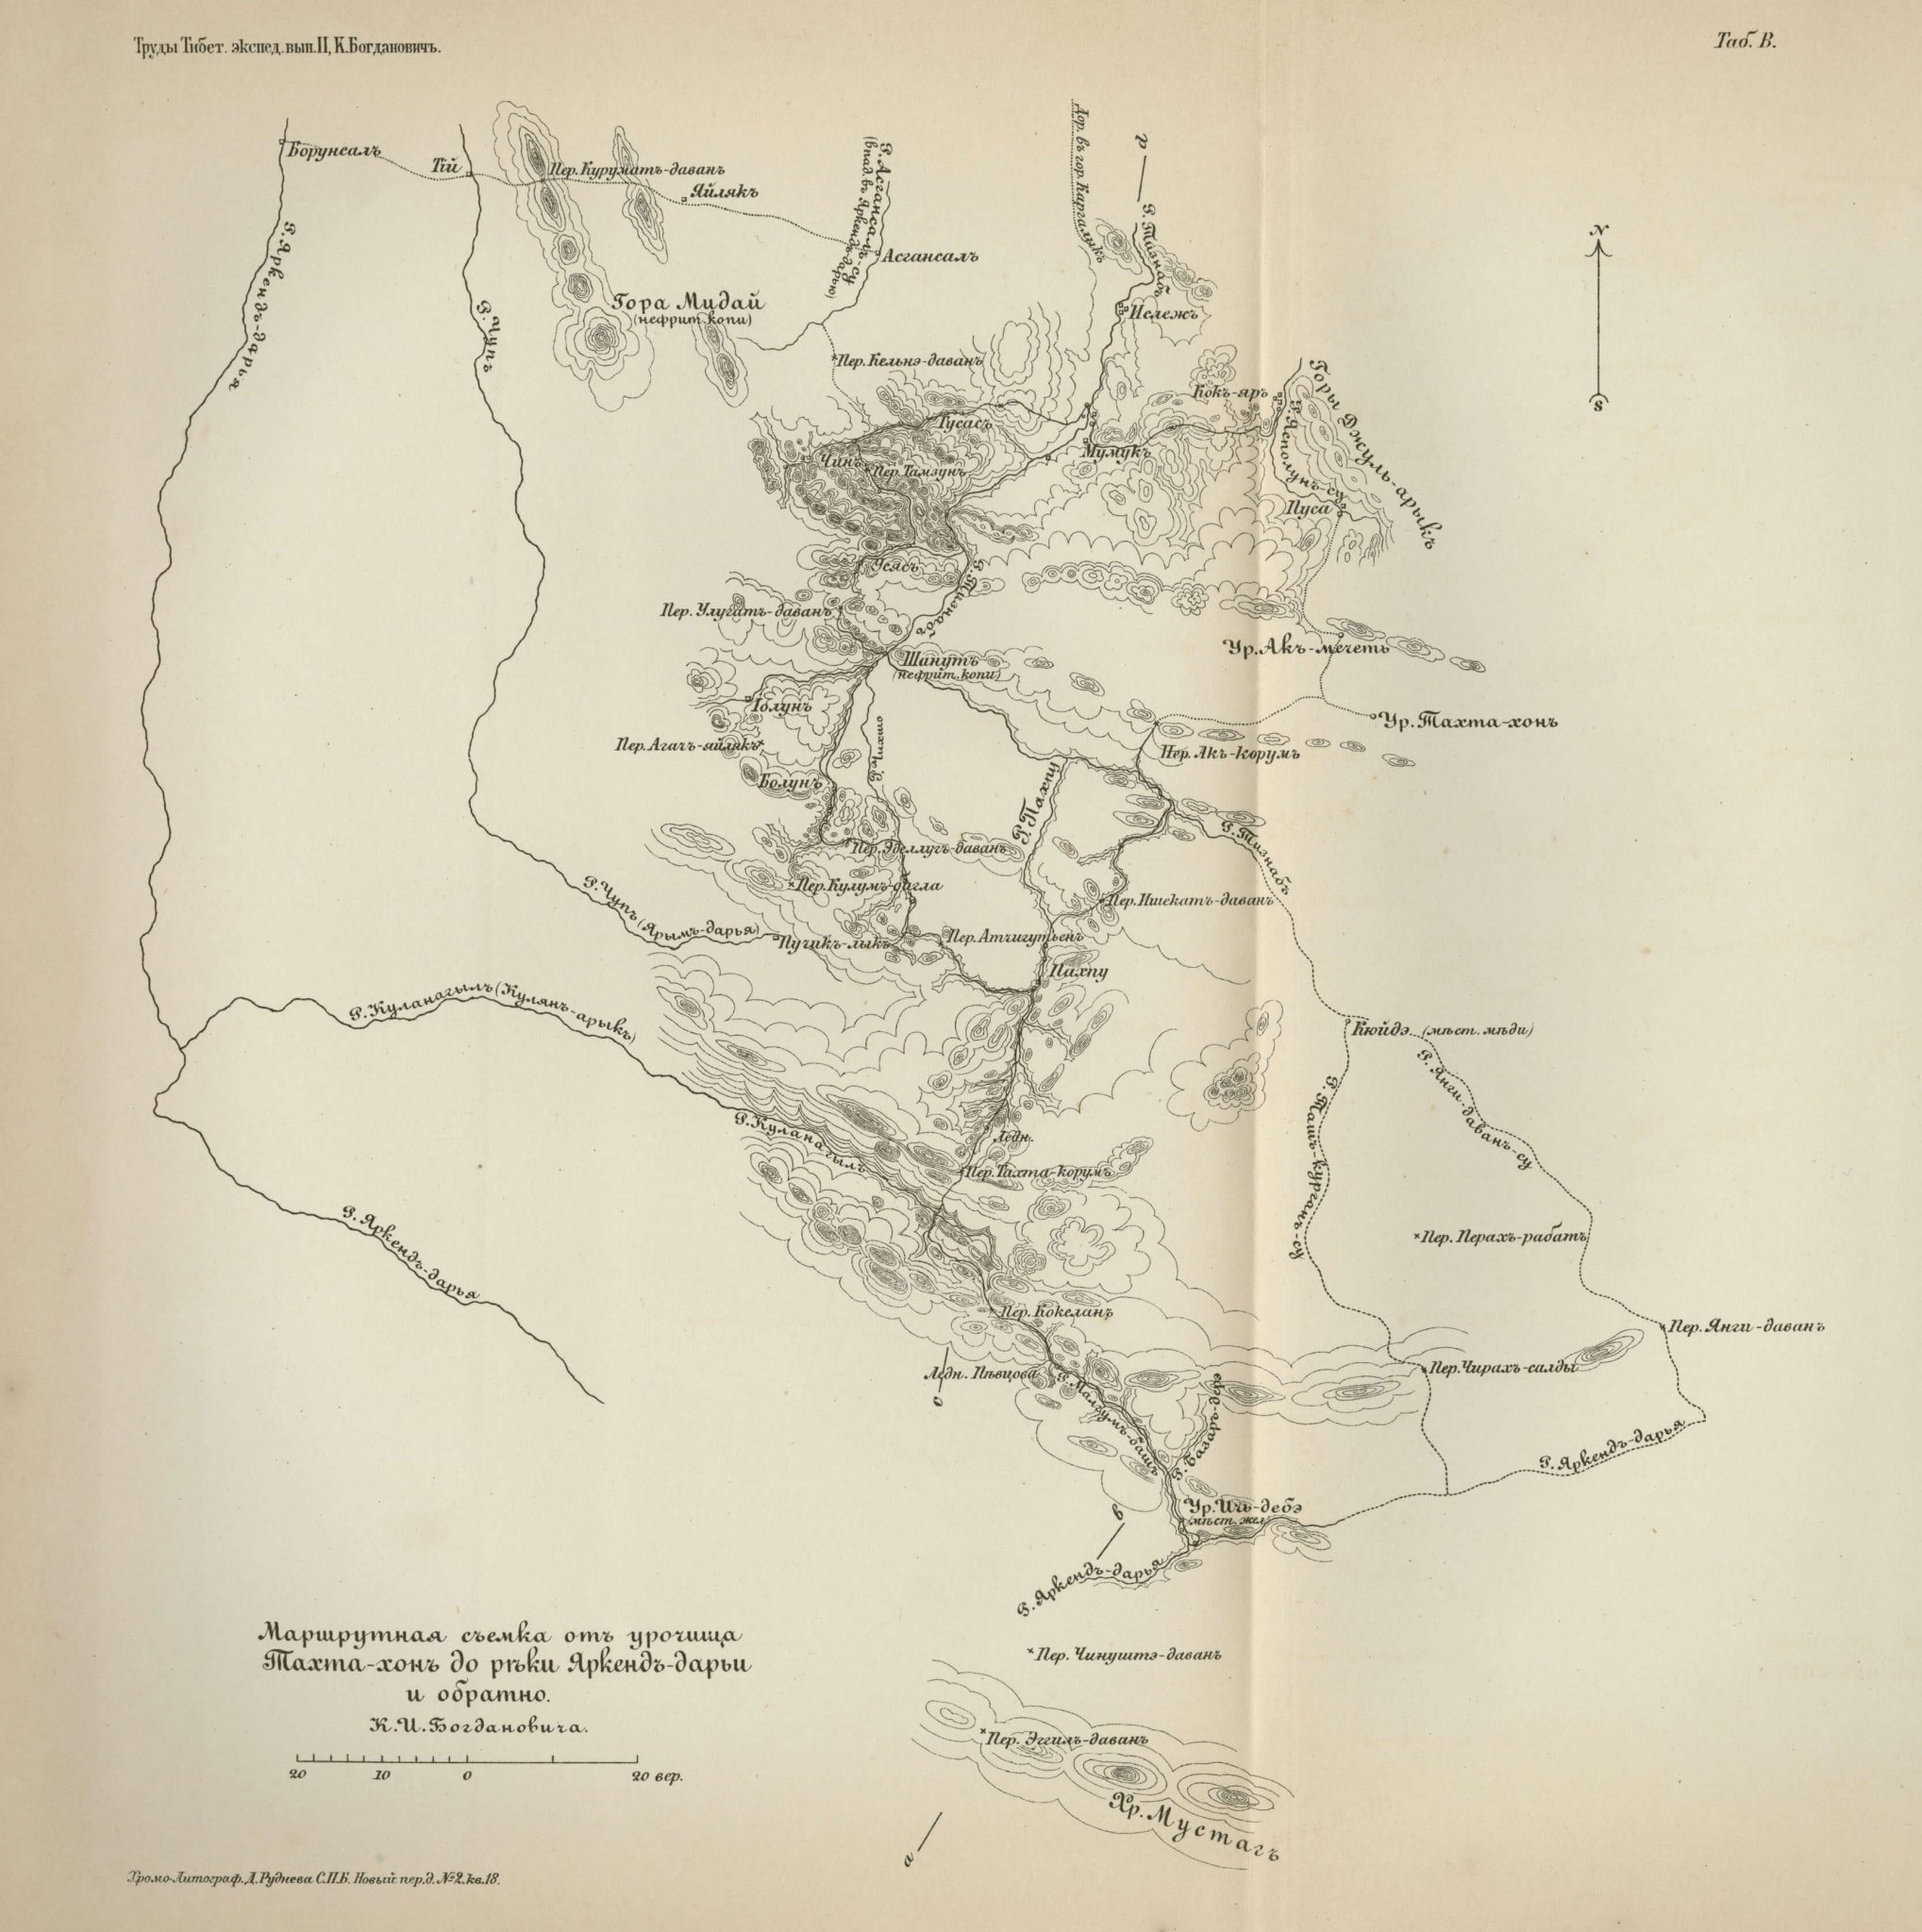 Route survey of the area surrounding Tahta Hon and the Yarkand River 1892